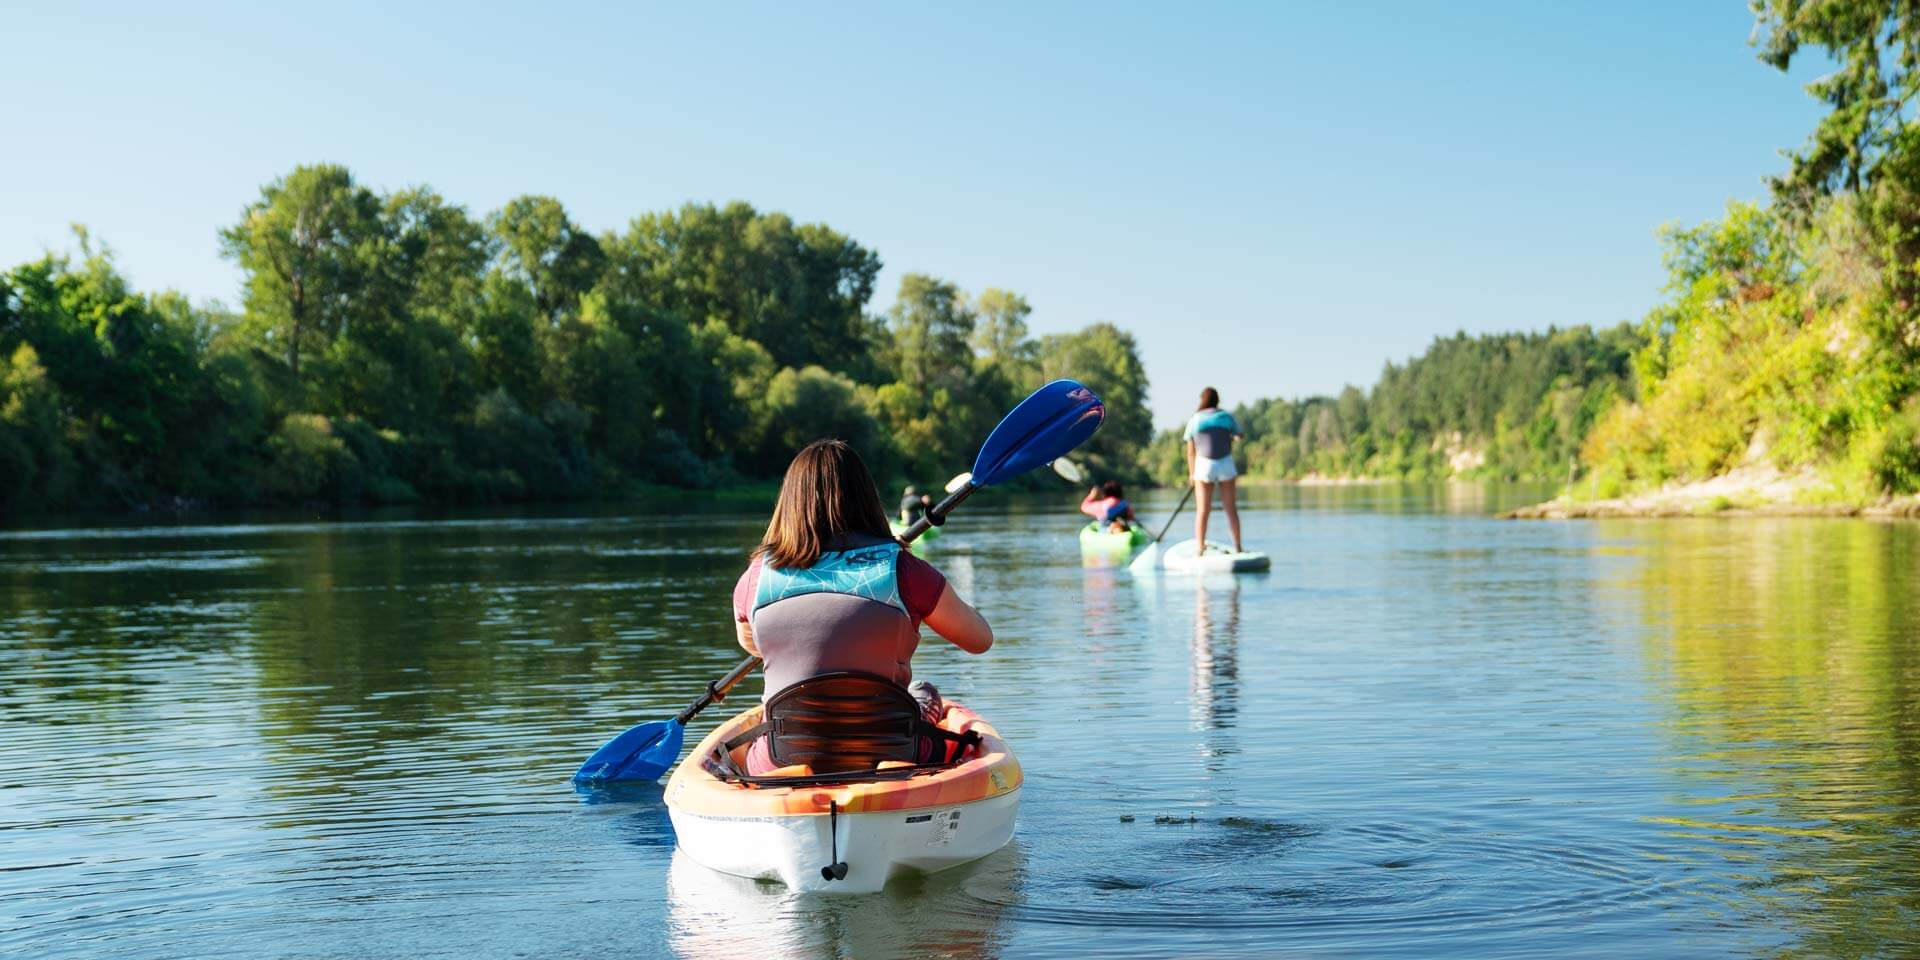 A girl is kayaking and her friends are up ahead paddle boarding on a still river